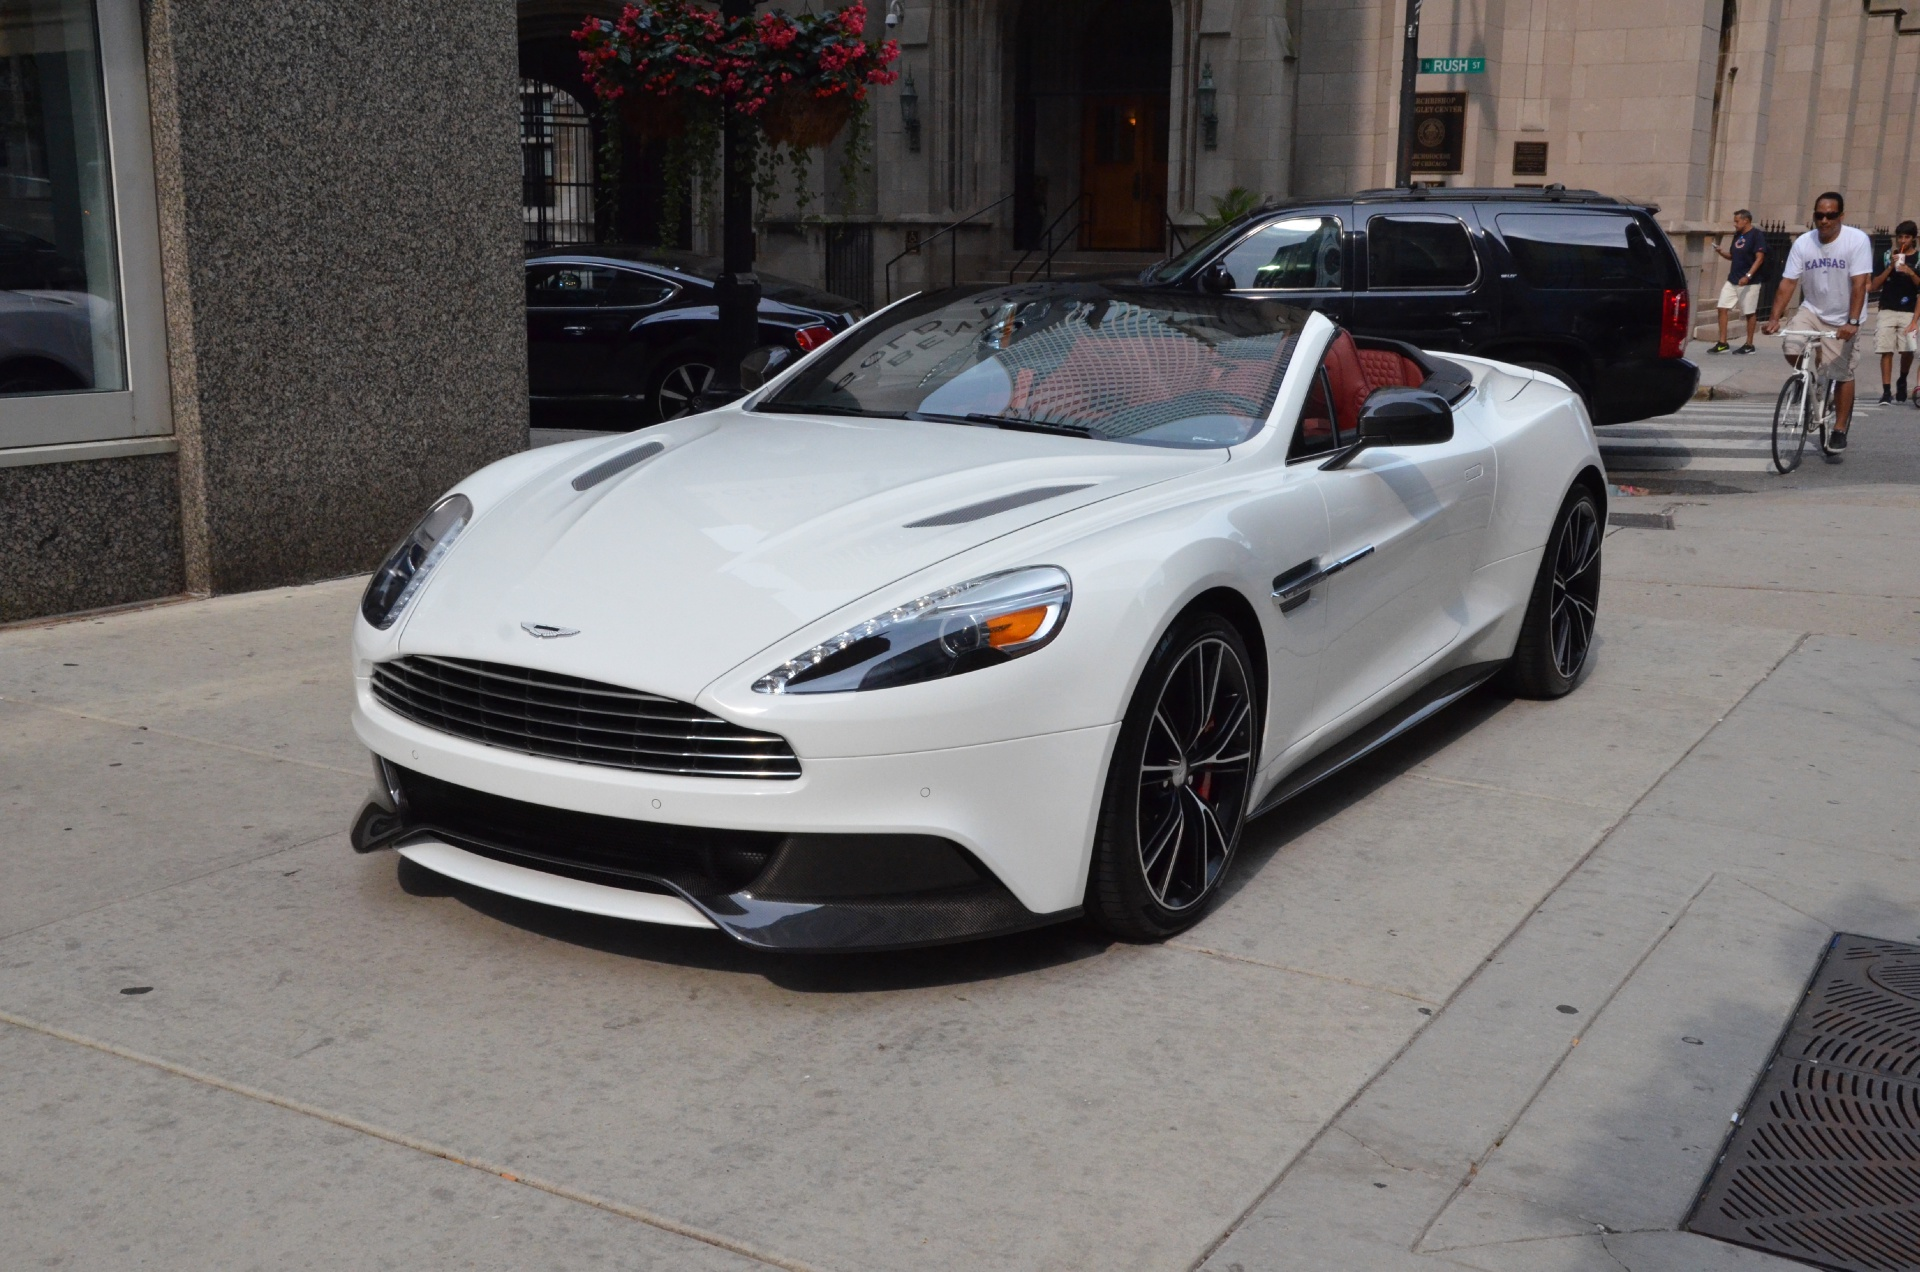 2014 aston martin vanquish convertible stock r164a for sale near chicago il il aston martin. Black Bedroom Furniture Sets. Home Design Ideas